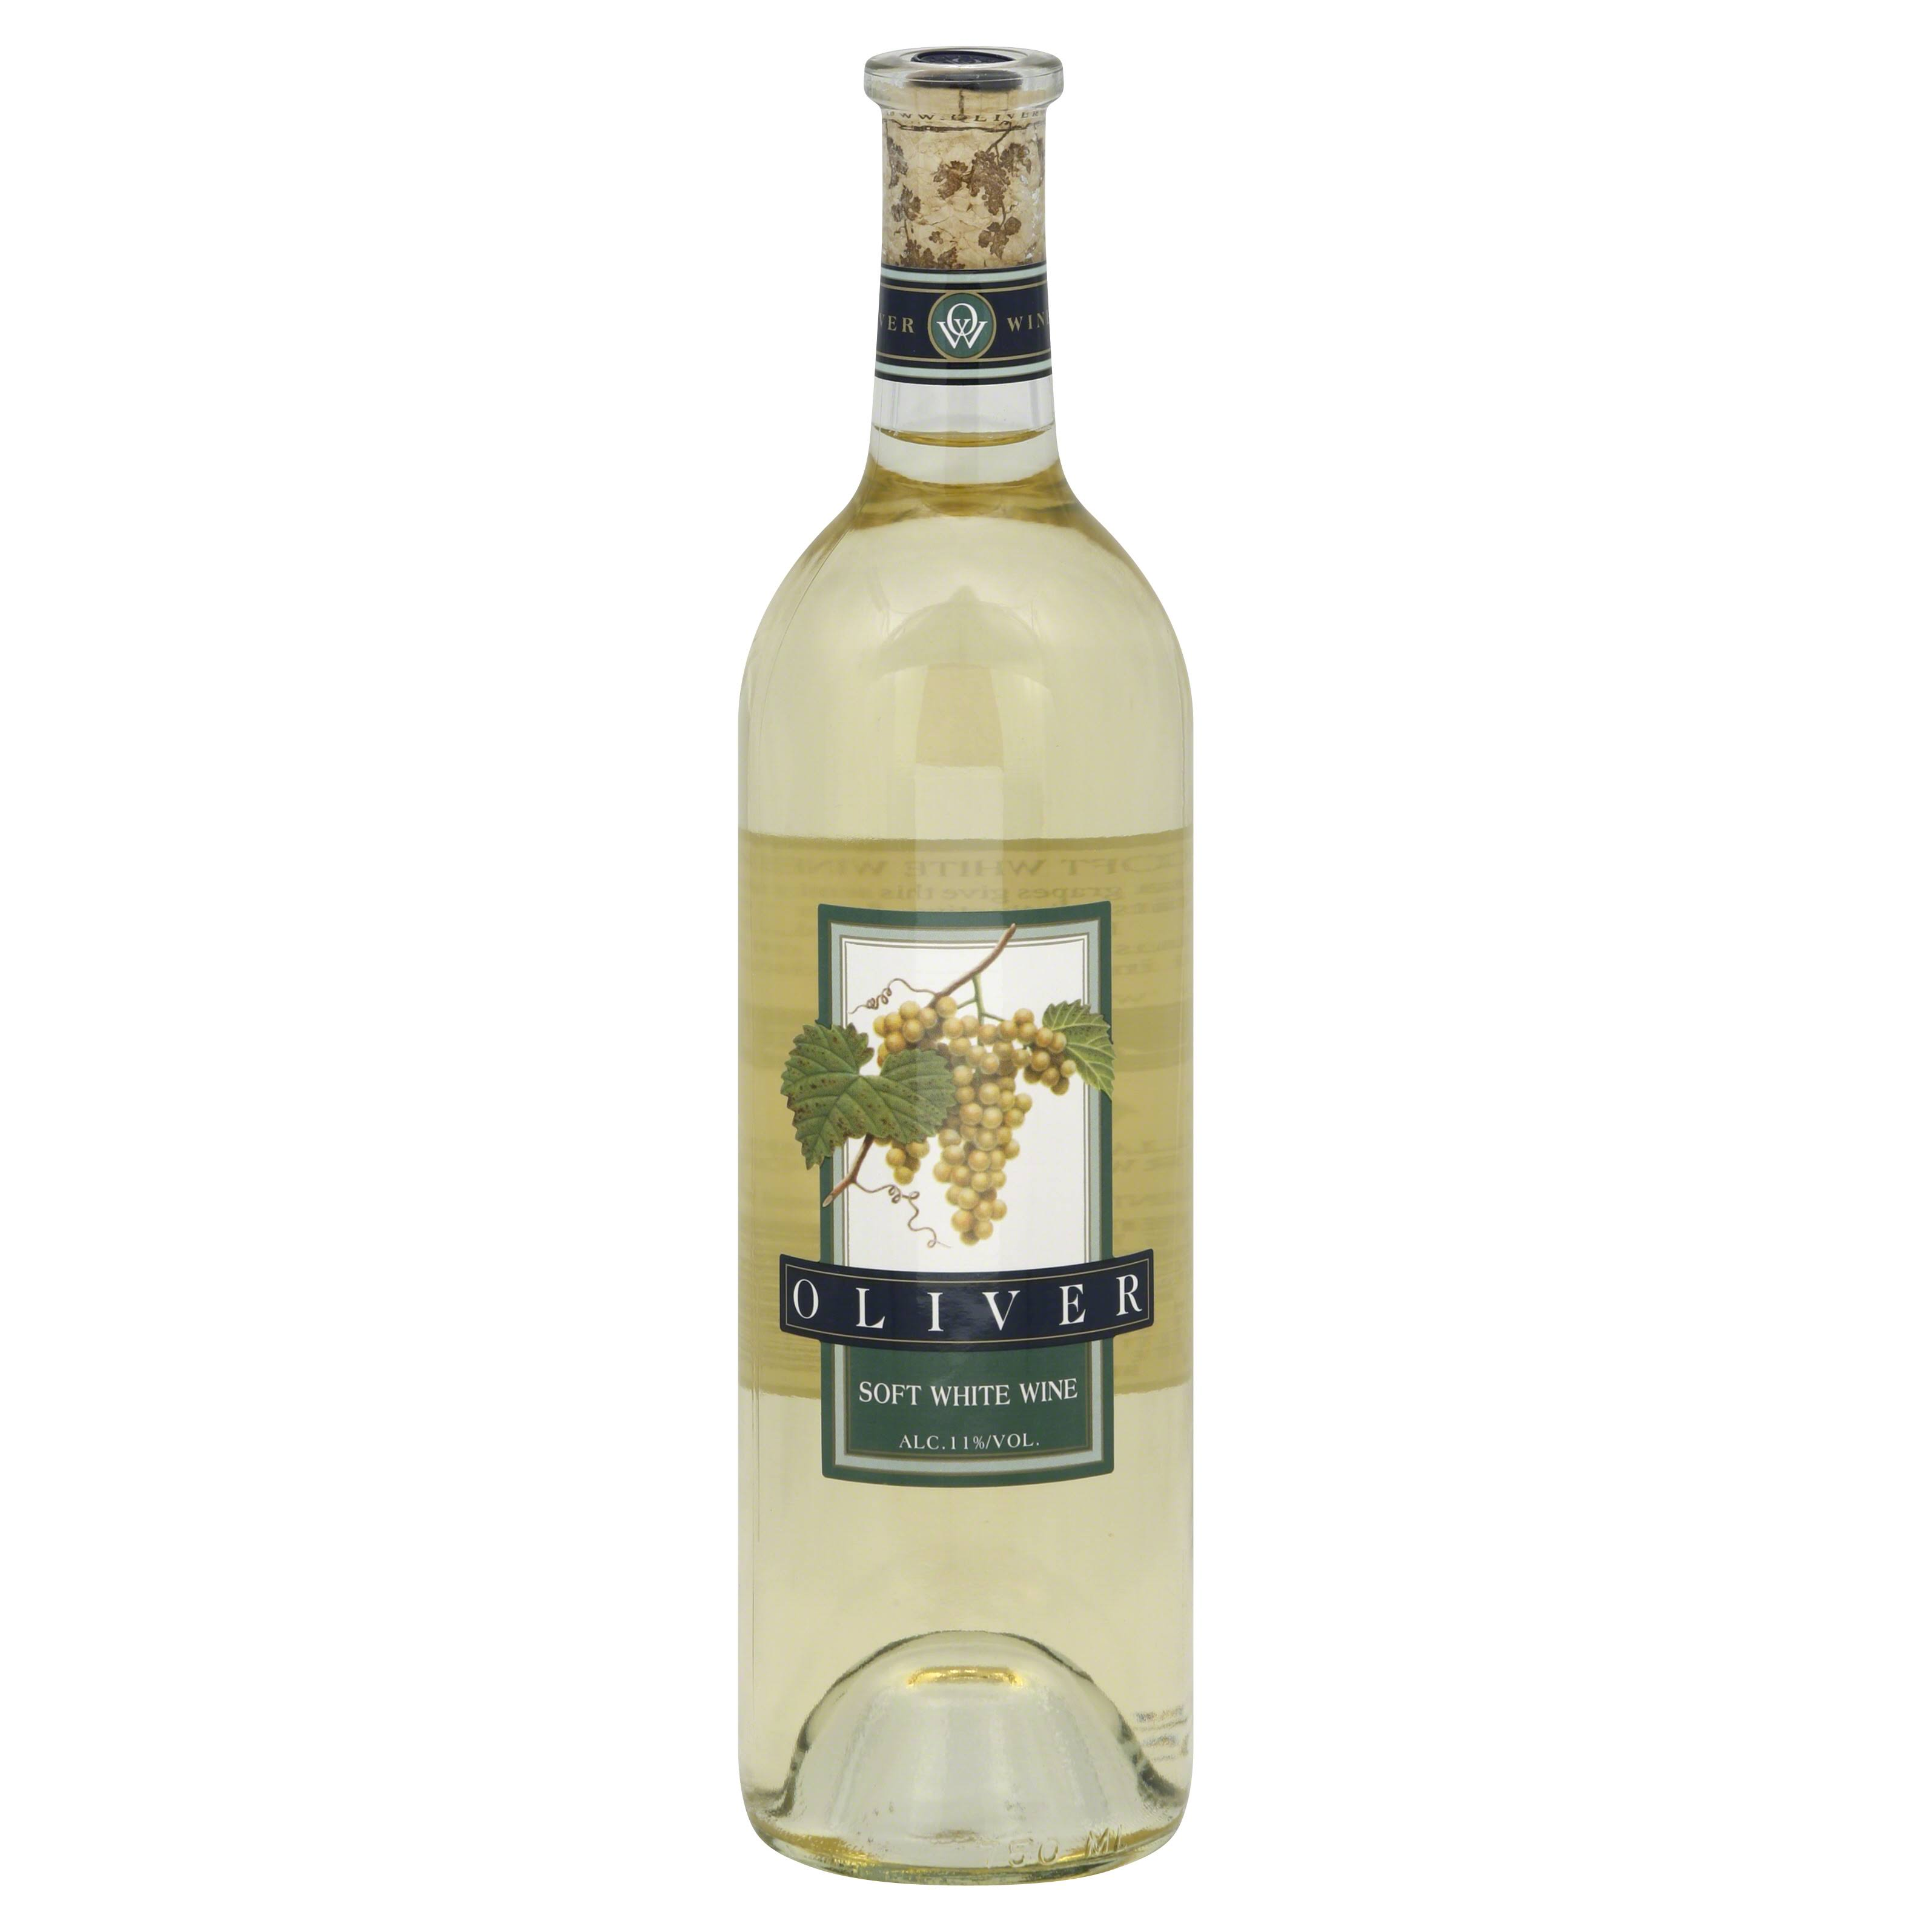 Oliver Soft White Wine